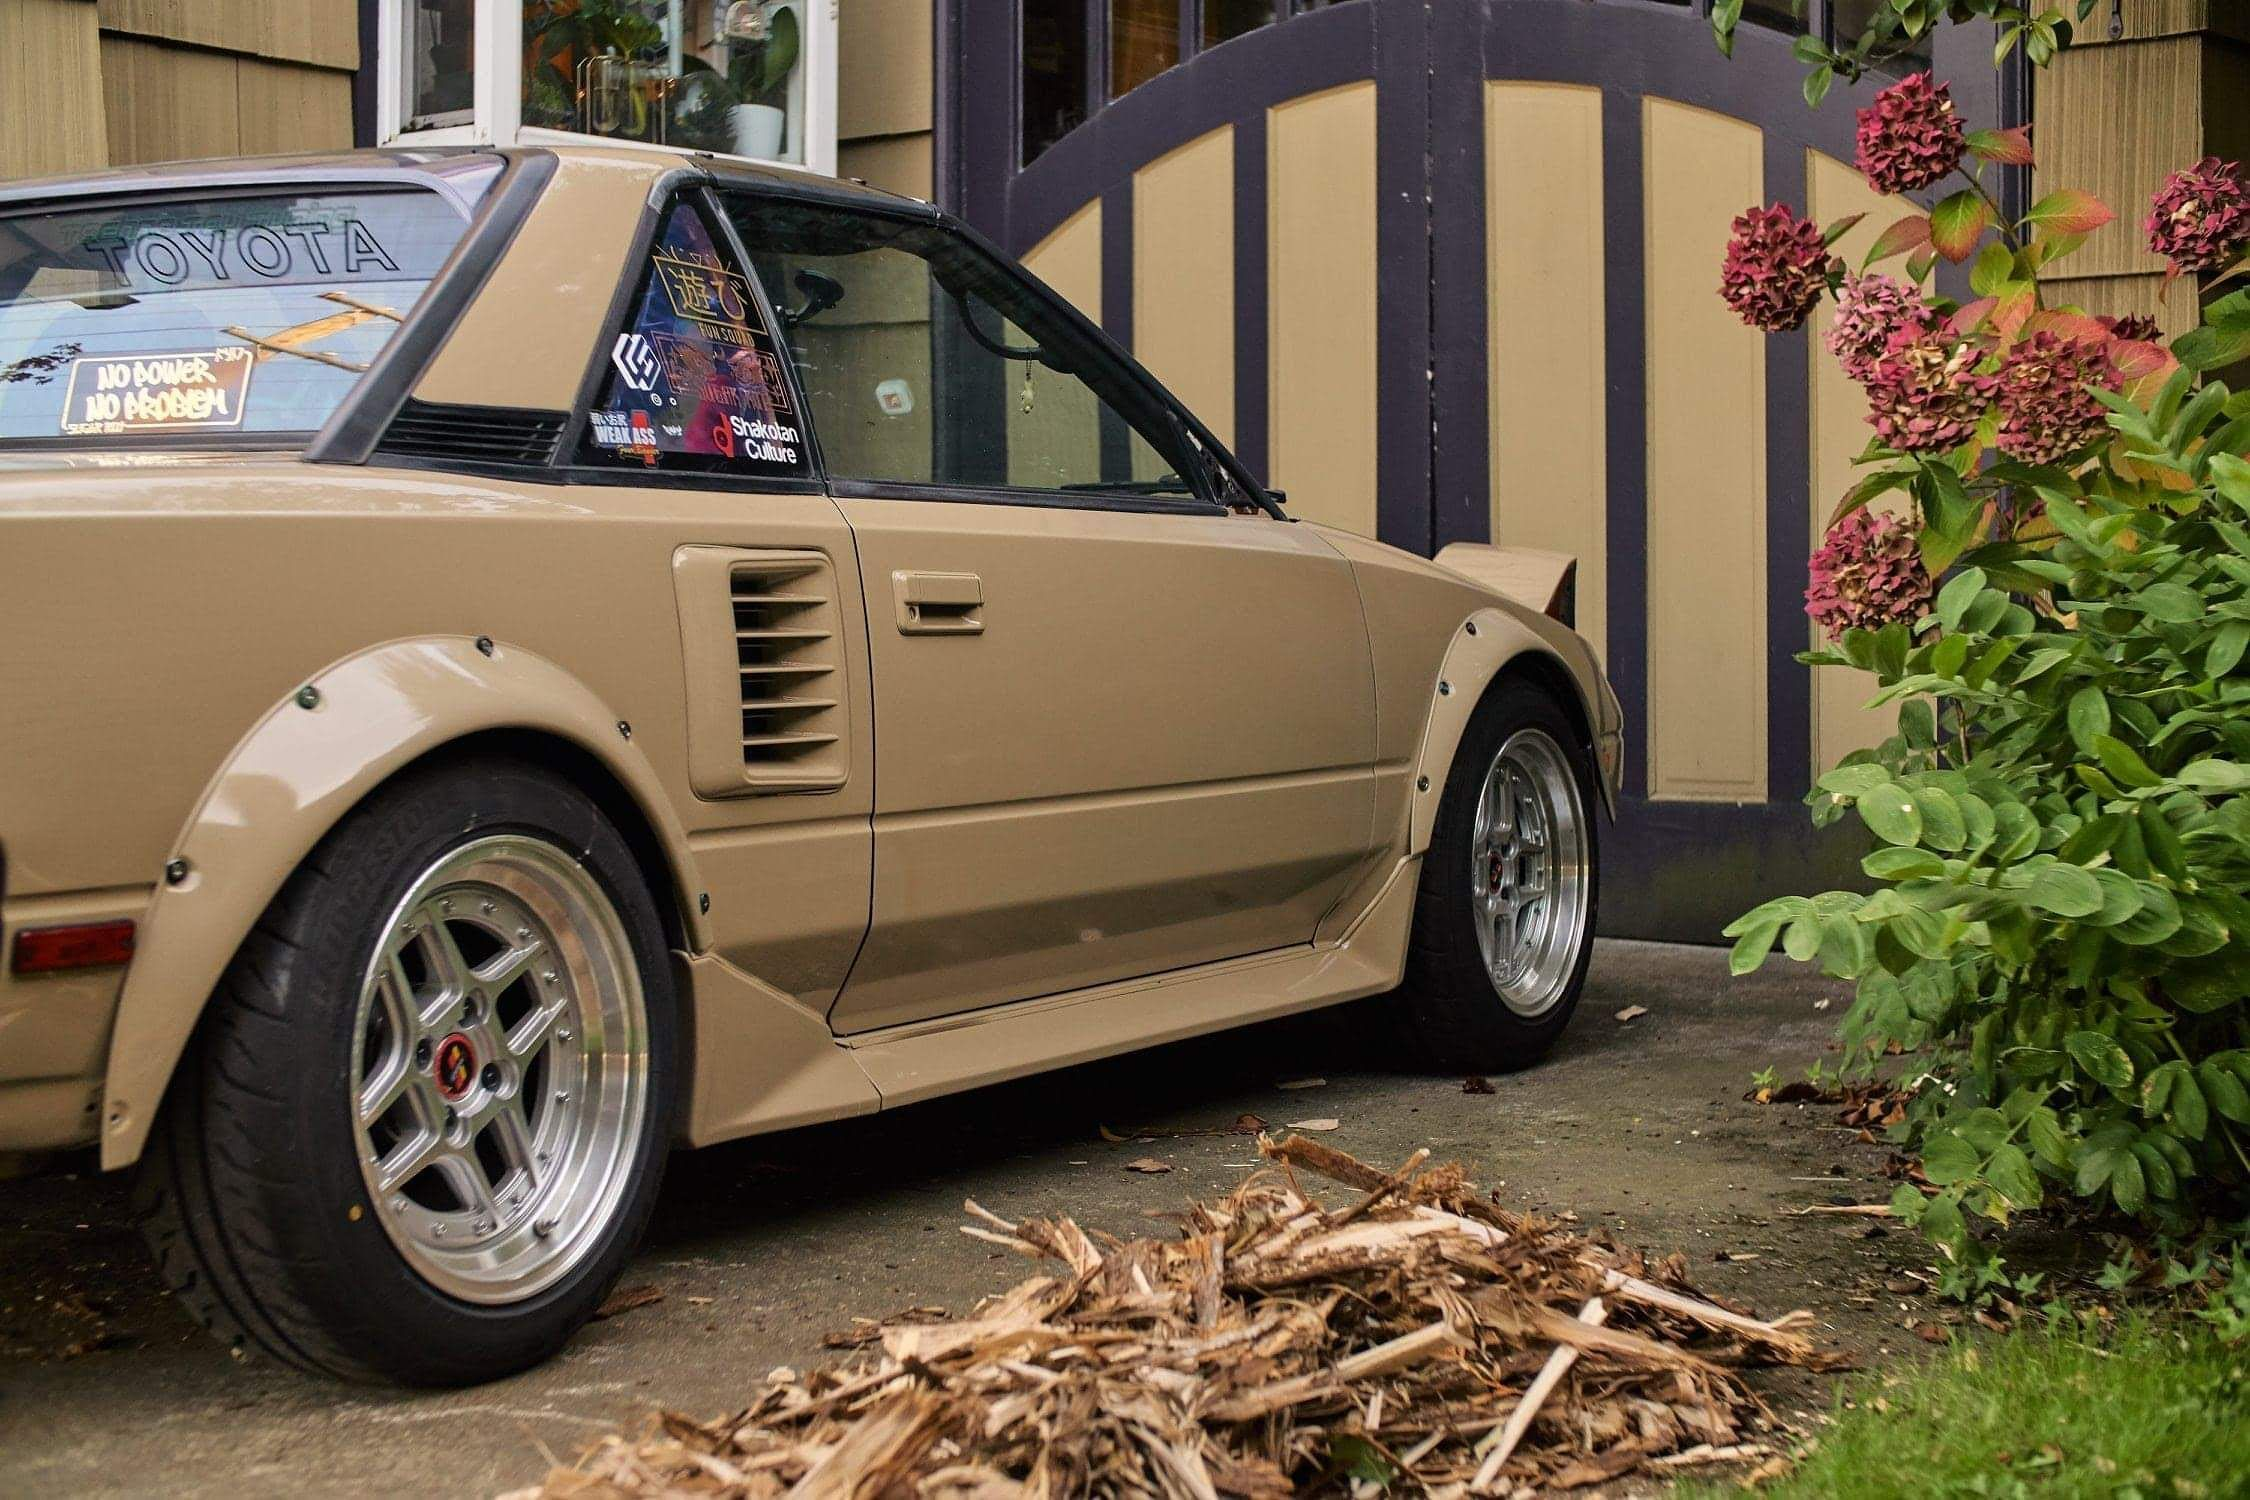 Quicksand Tan Aw11 Mr2 In 2020 Japan Cars Toyota Mr2 Bmw Classic Cars